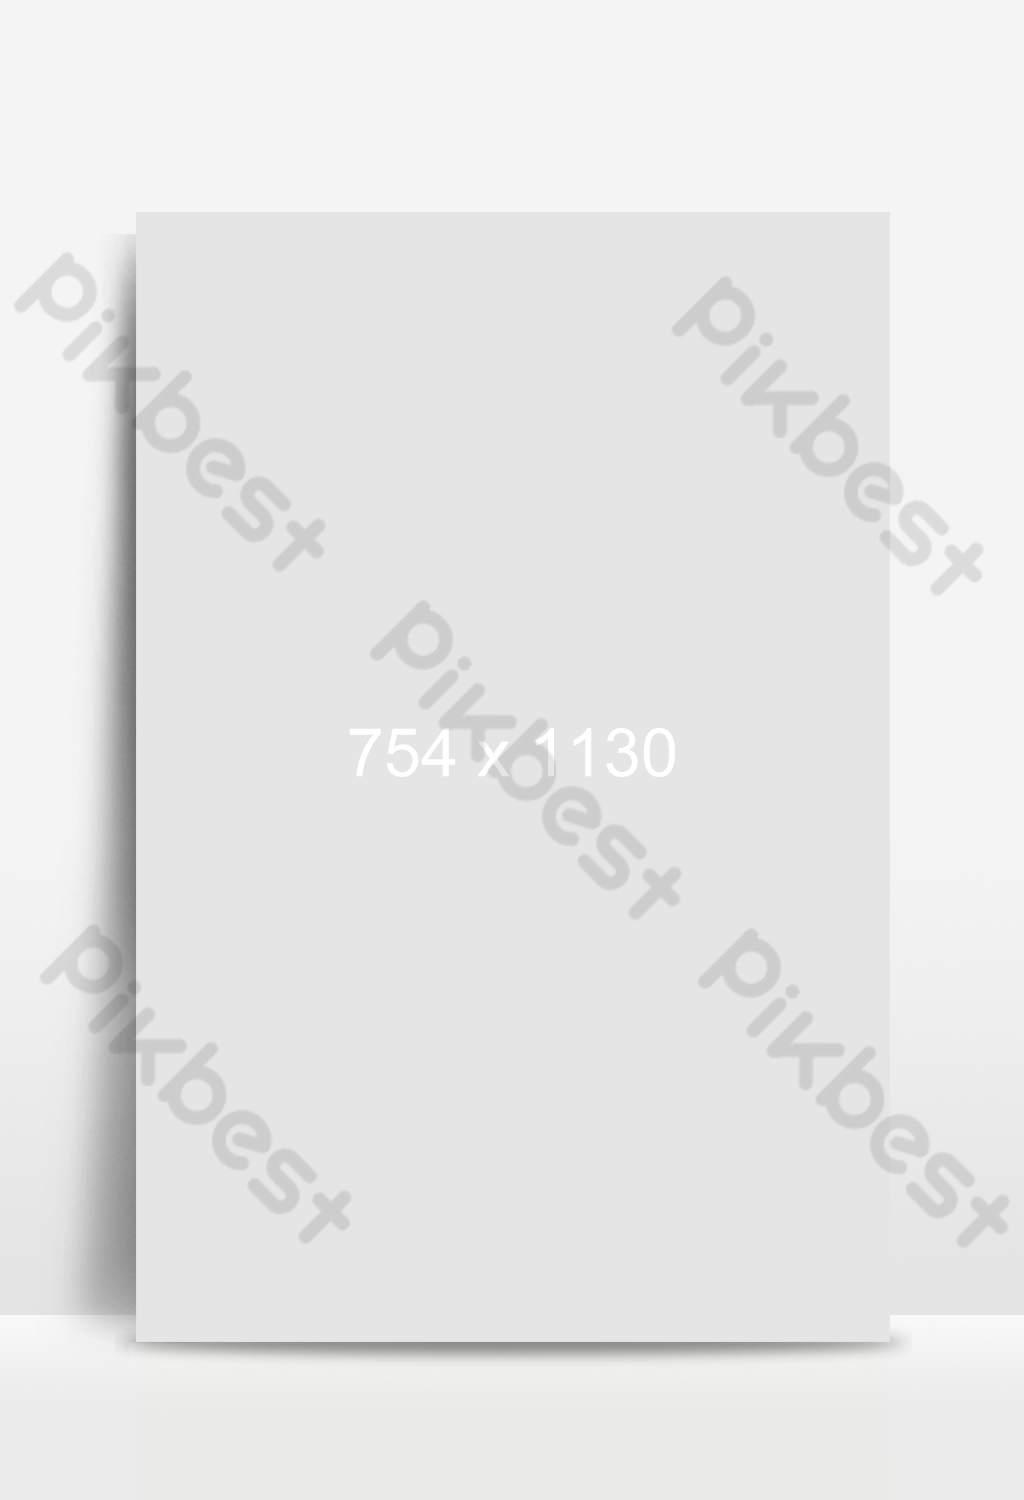 Yoga Practice Blue Literary Poster Banner Background Backgrounds Psd Free Download Pikbest